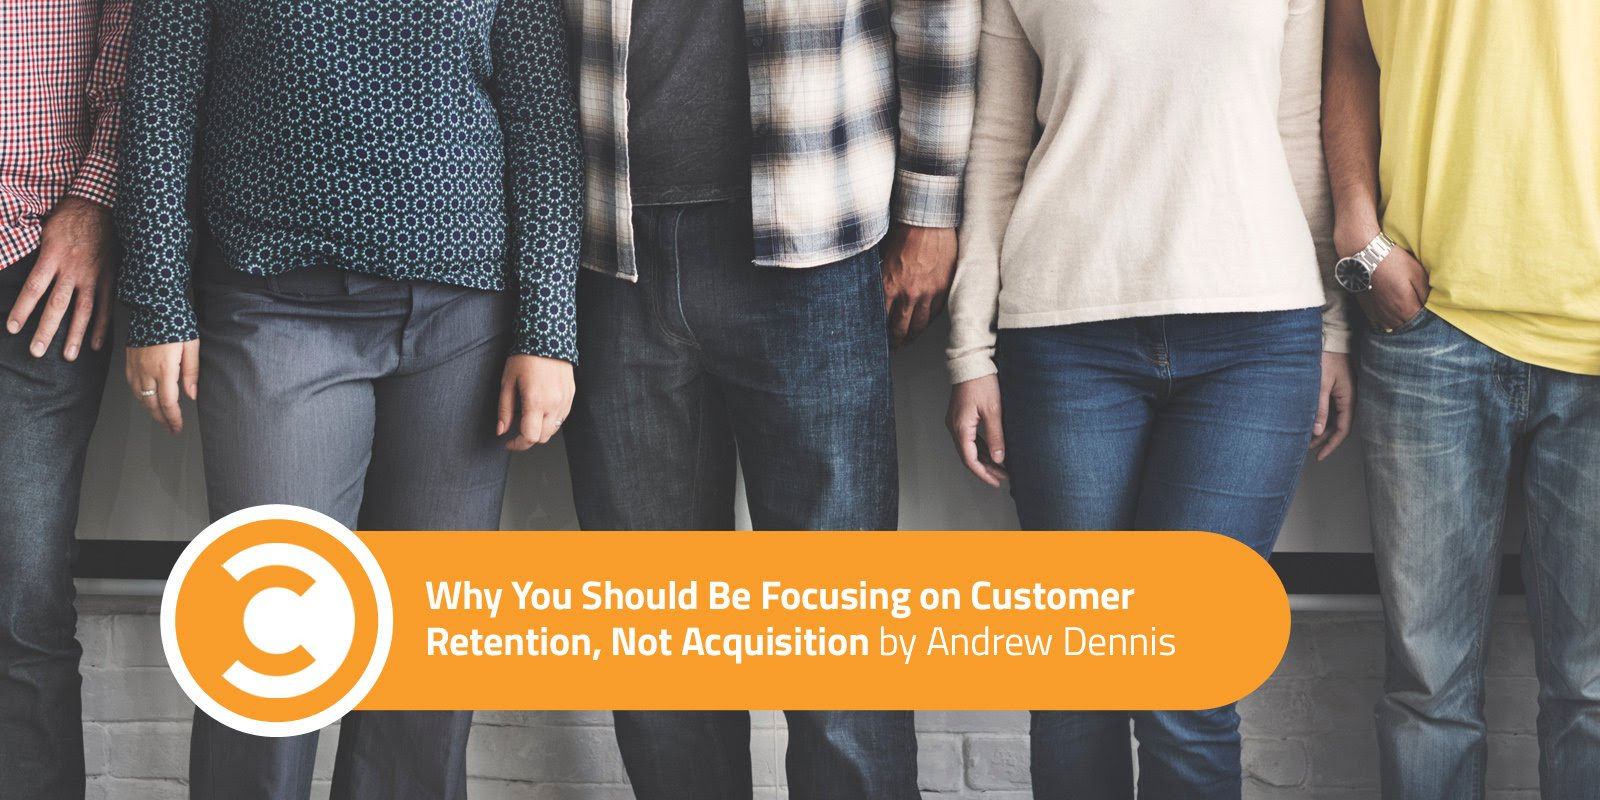 Why You Should Be Focusing on Customer Retention, Not Acquisition